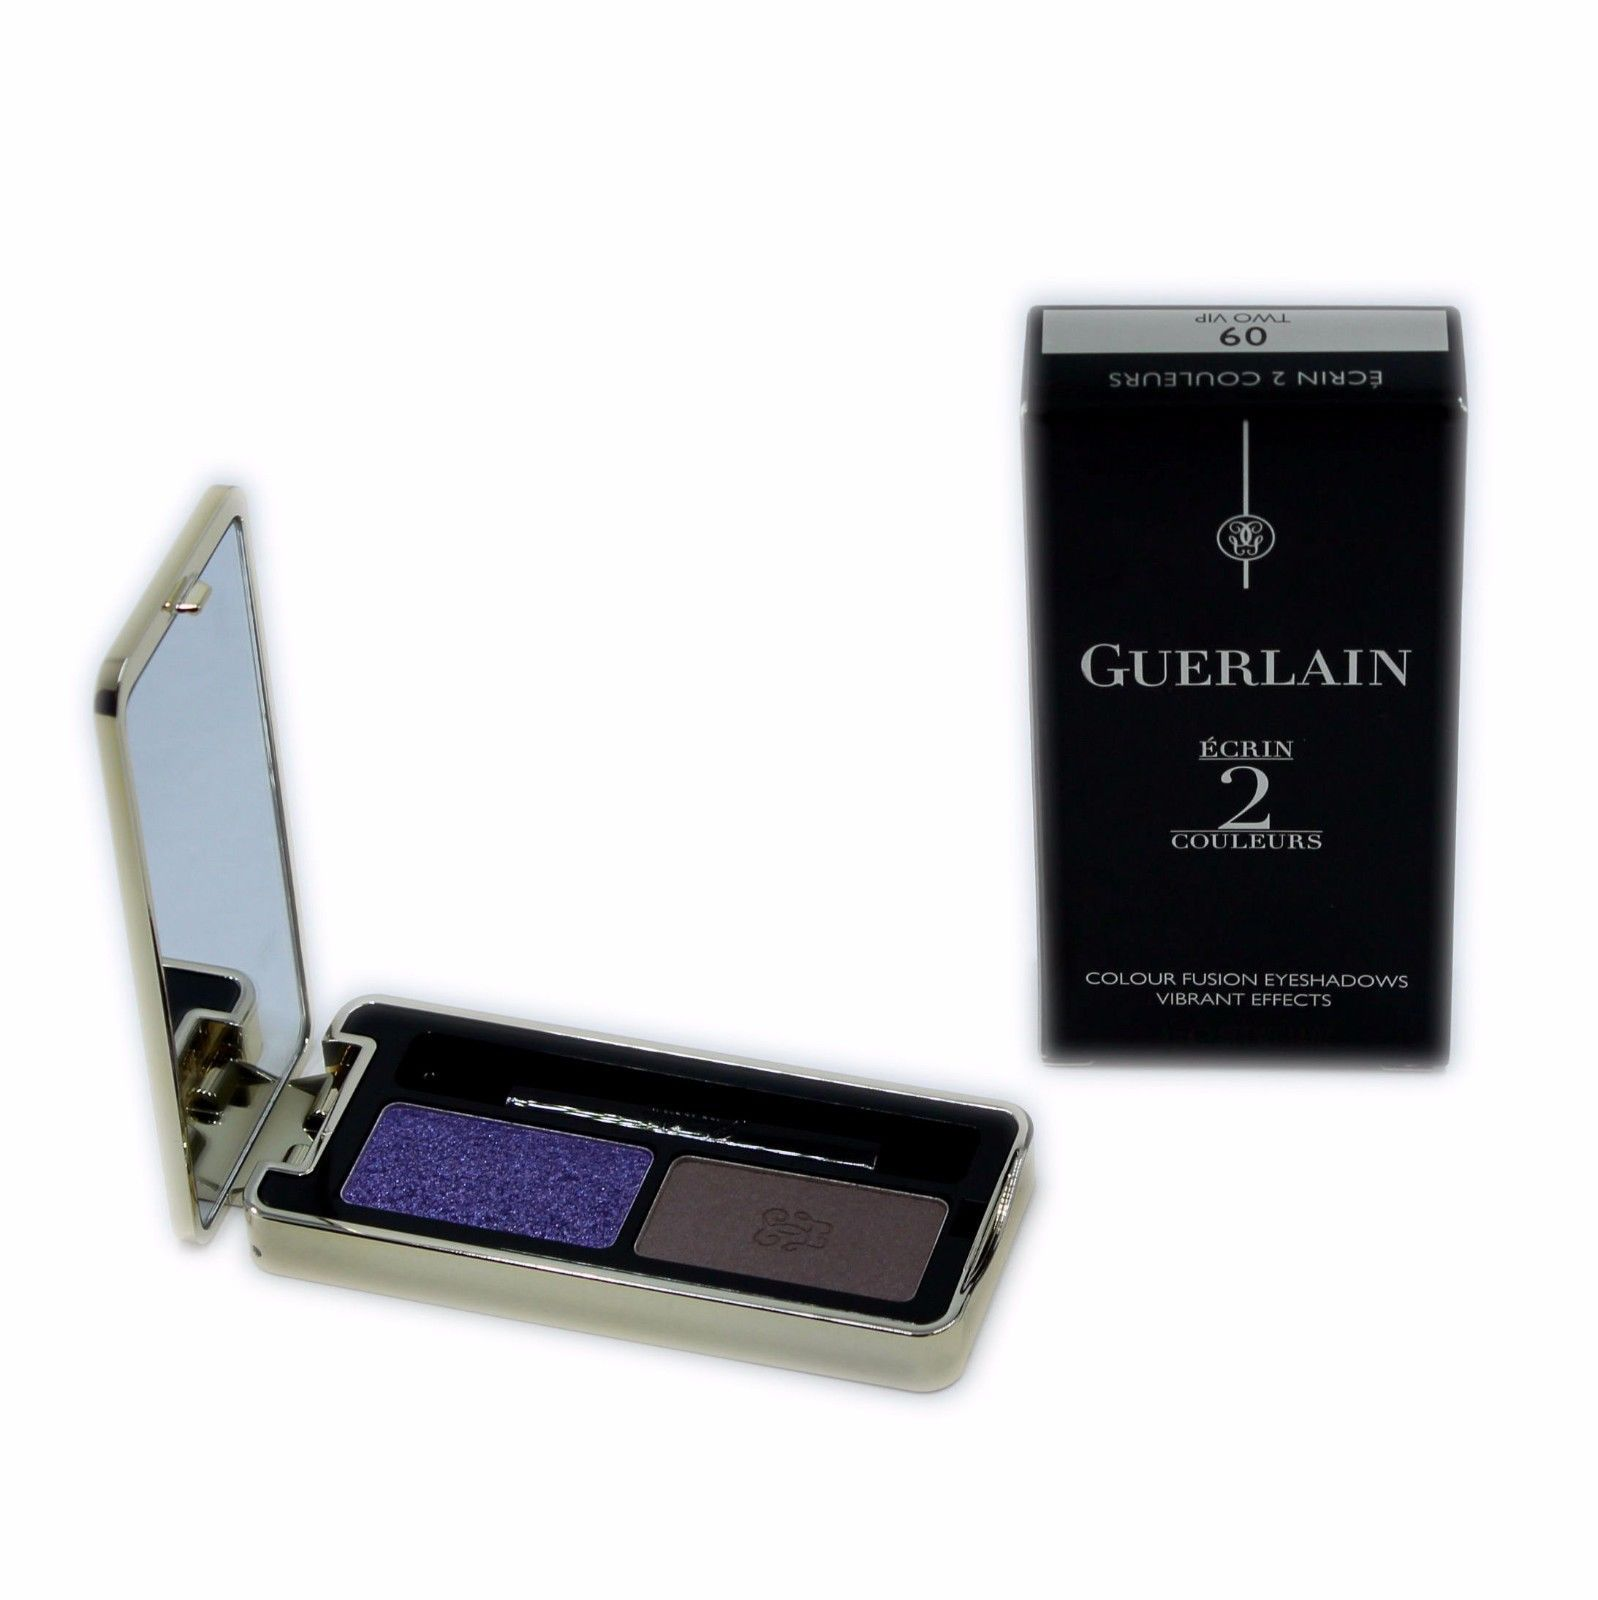 Primary image for GUERLAIN ECRIN 2 COULEURS COLOUR FUSION EYESHADOWS EFFETS VIBRANTS 4G #09-G41395